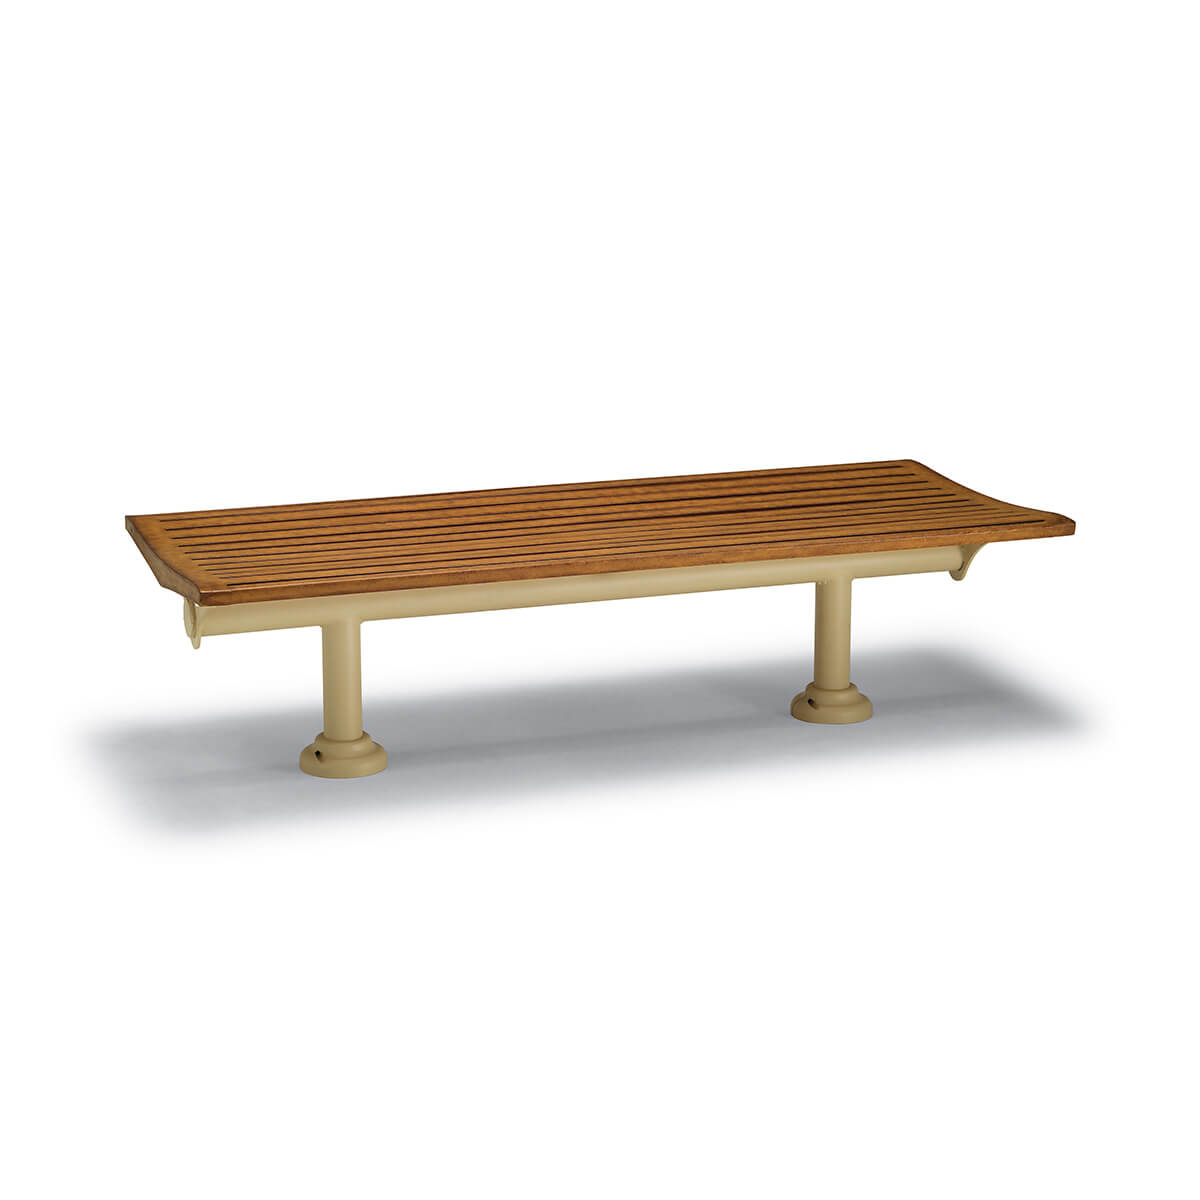 Backless Benches for Commercial Spaces